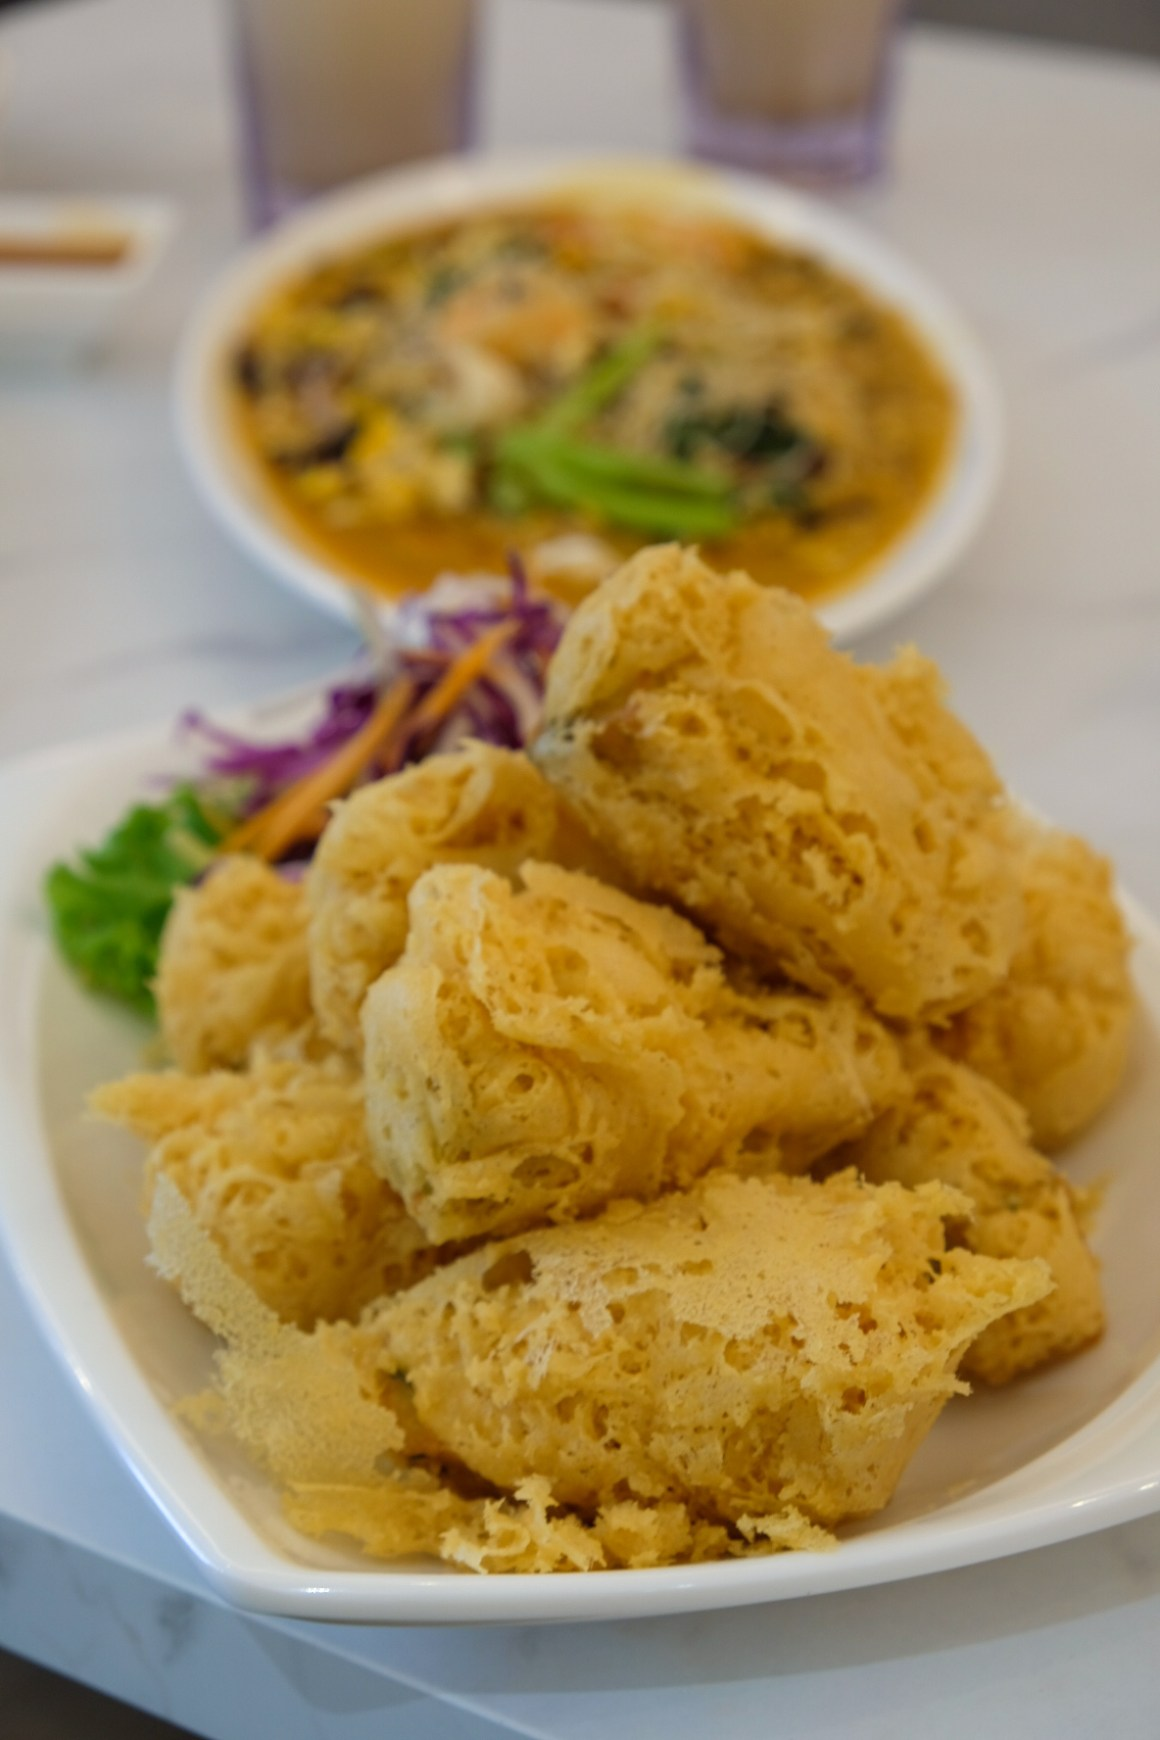 White Restaurant @ Suntec Serving Outlet Exclusive Mala Bee Hoon - Home Made Fried Beancurd ($12.80 small)